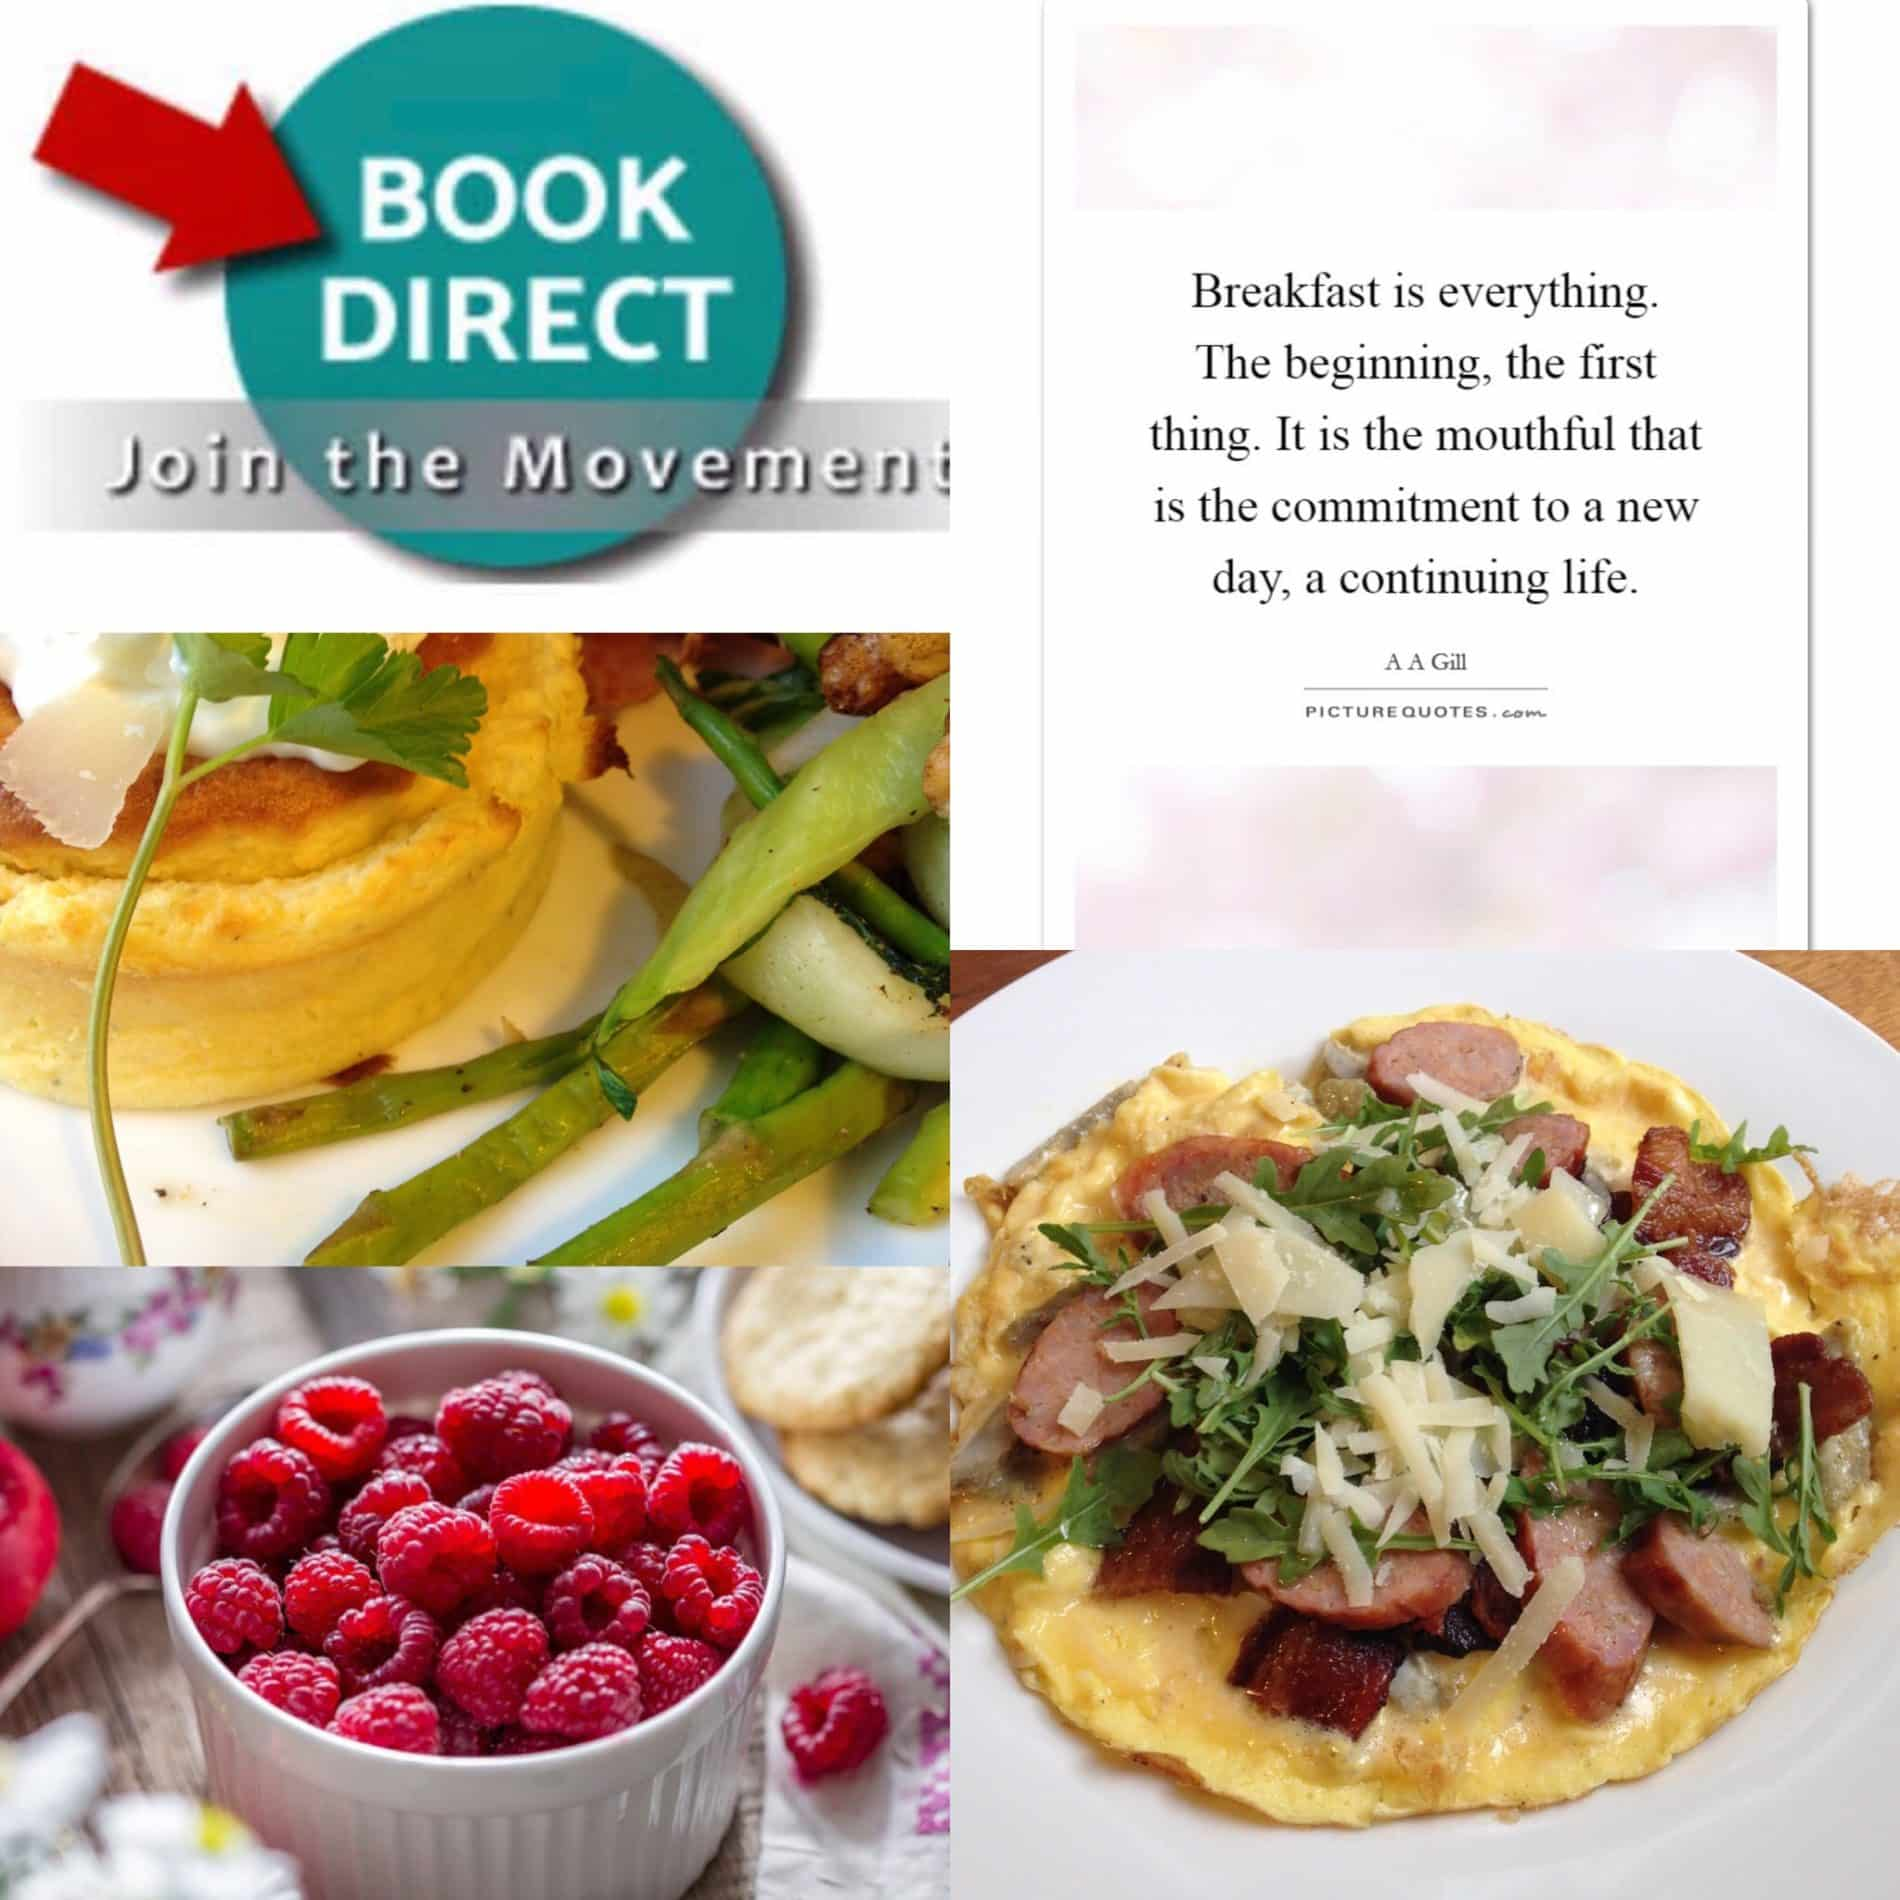 #BookDirect with food pictures